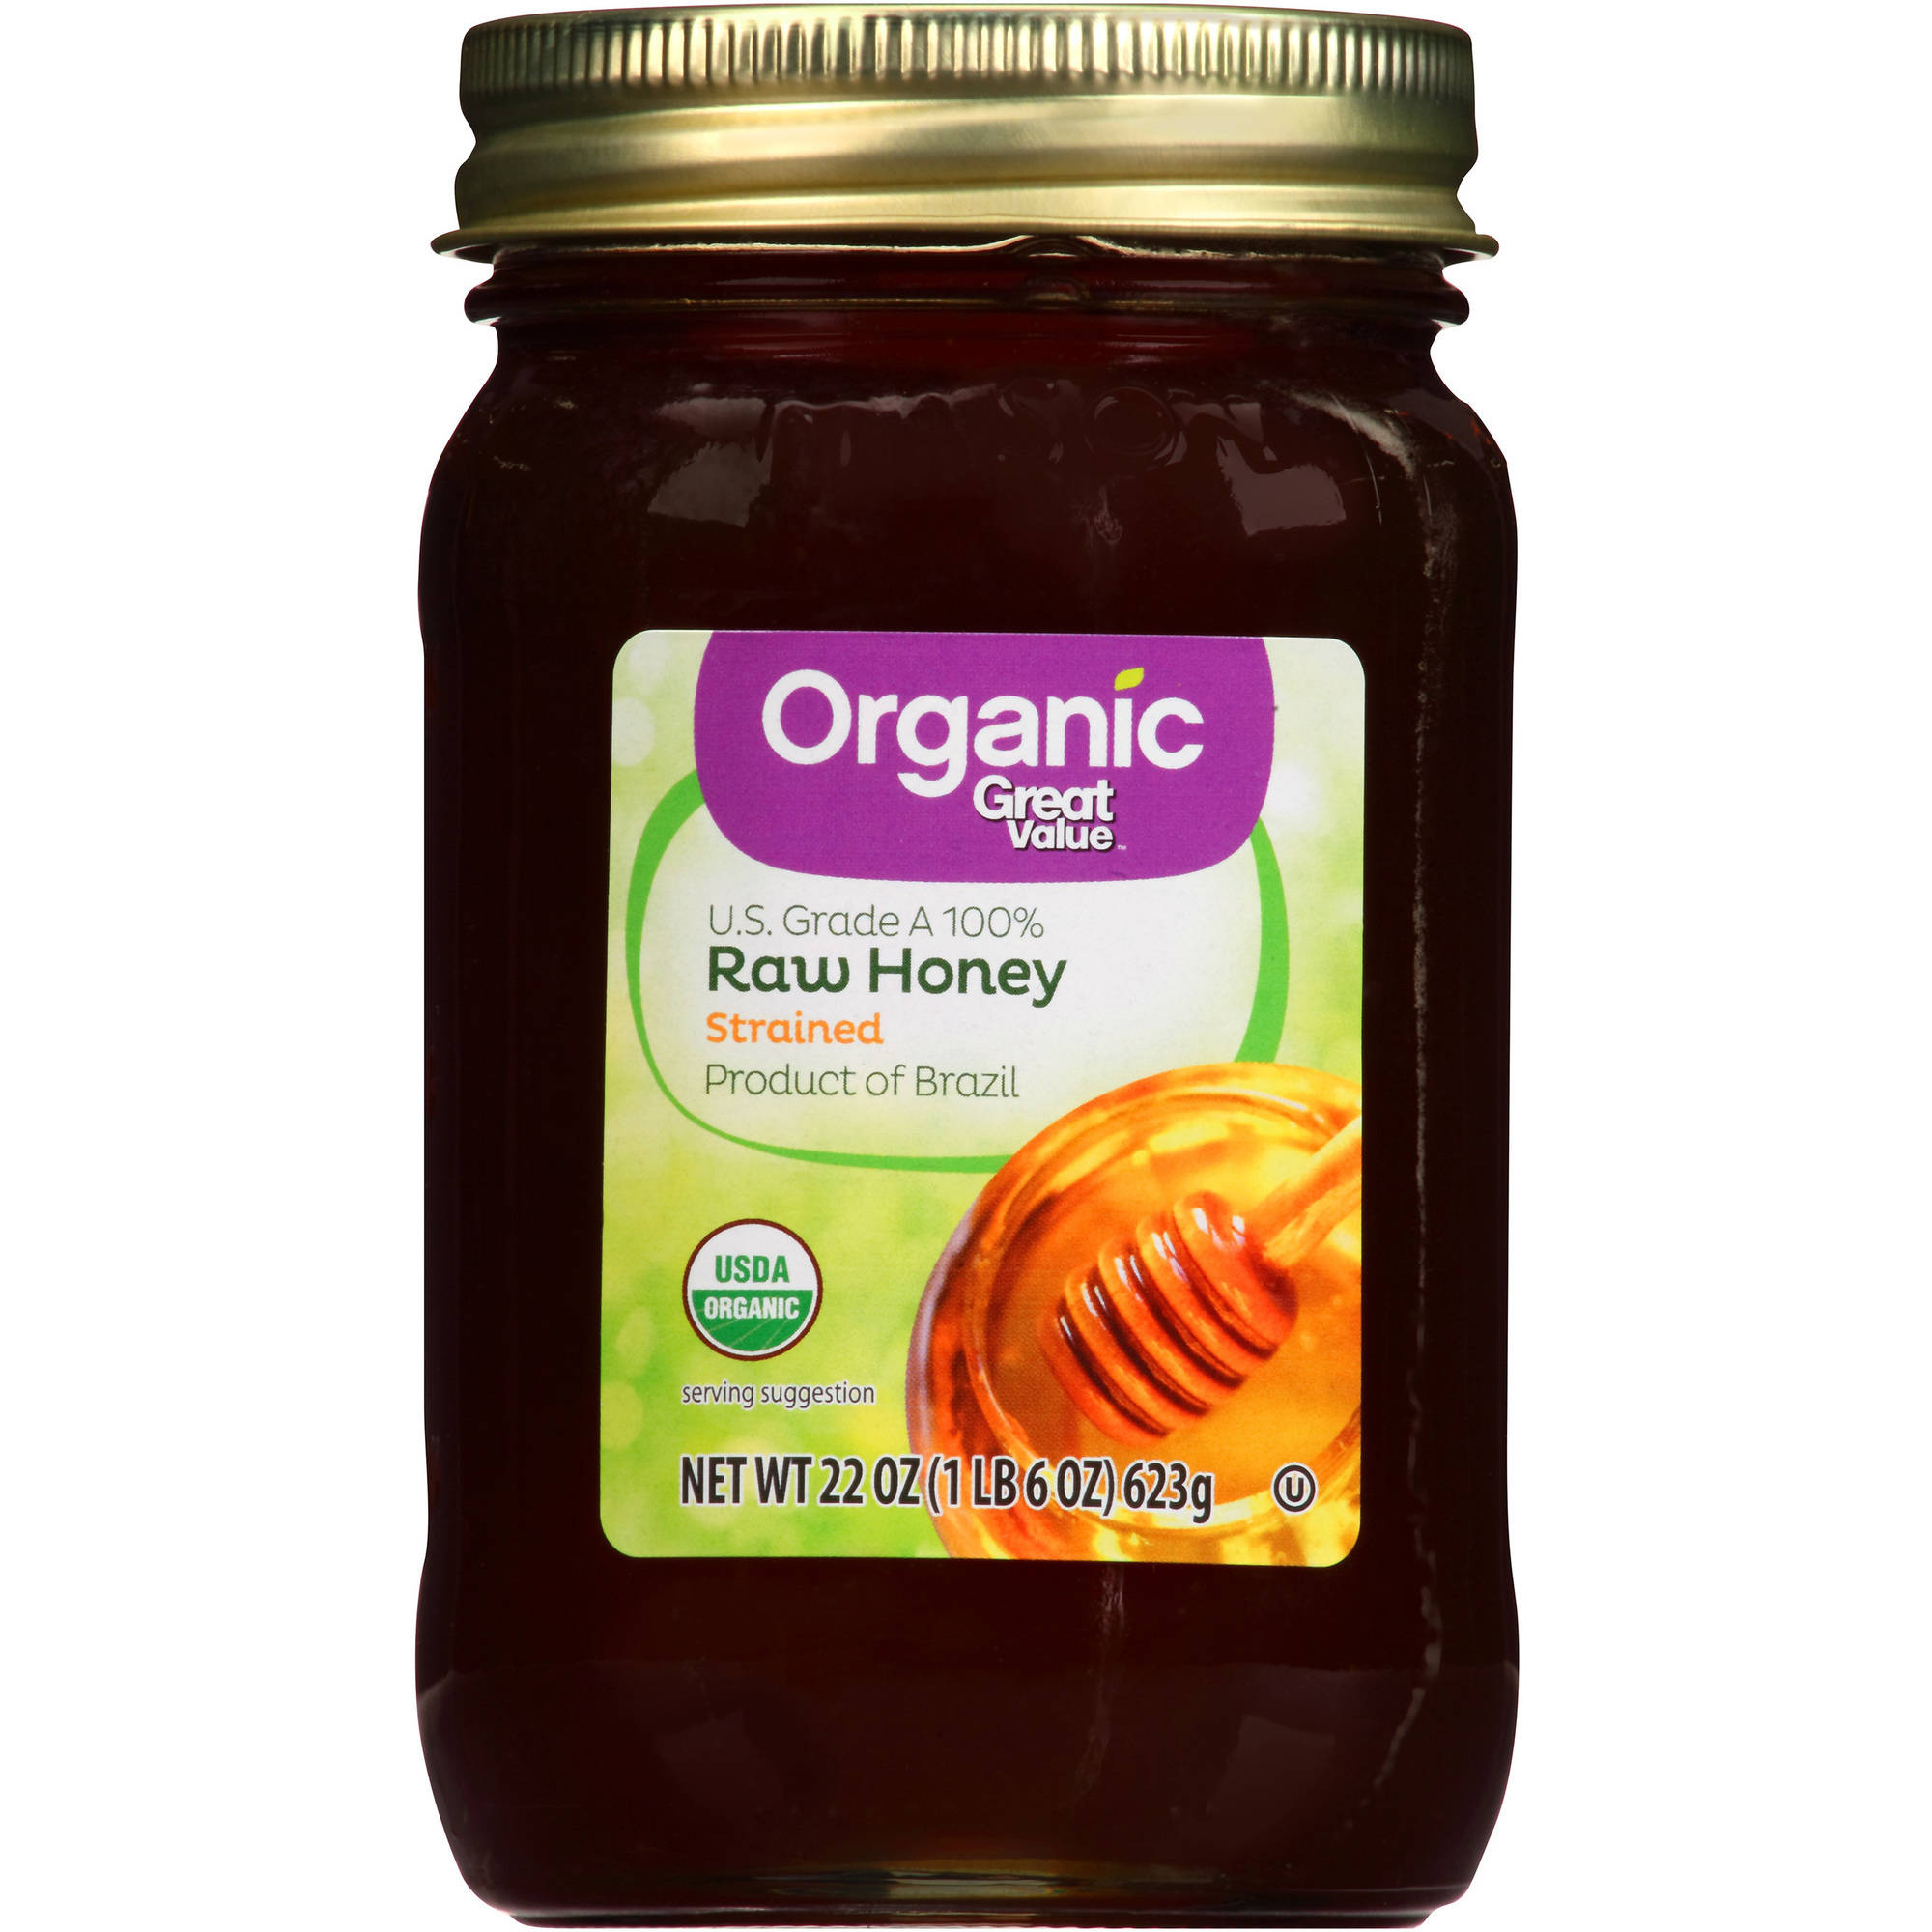 Great Value Organic Raw Honey, 22 oz by Wal-Mart Stores, Inc.